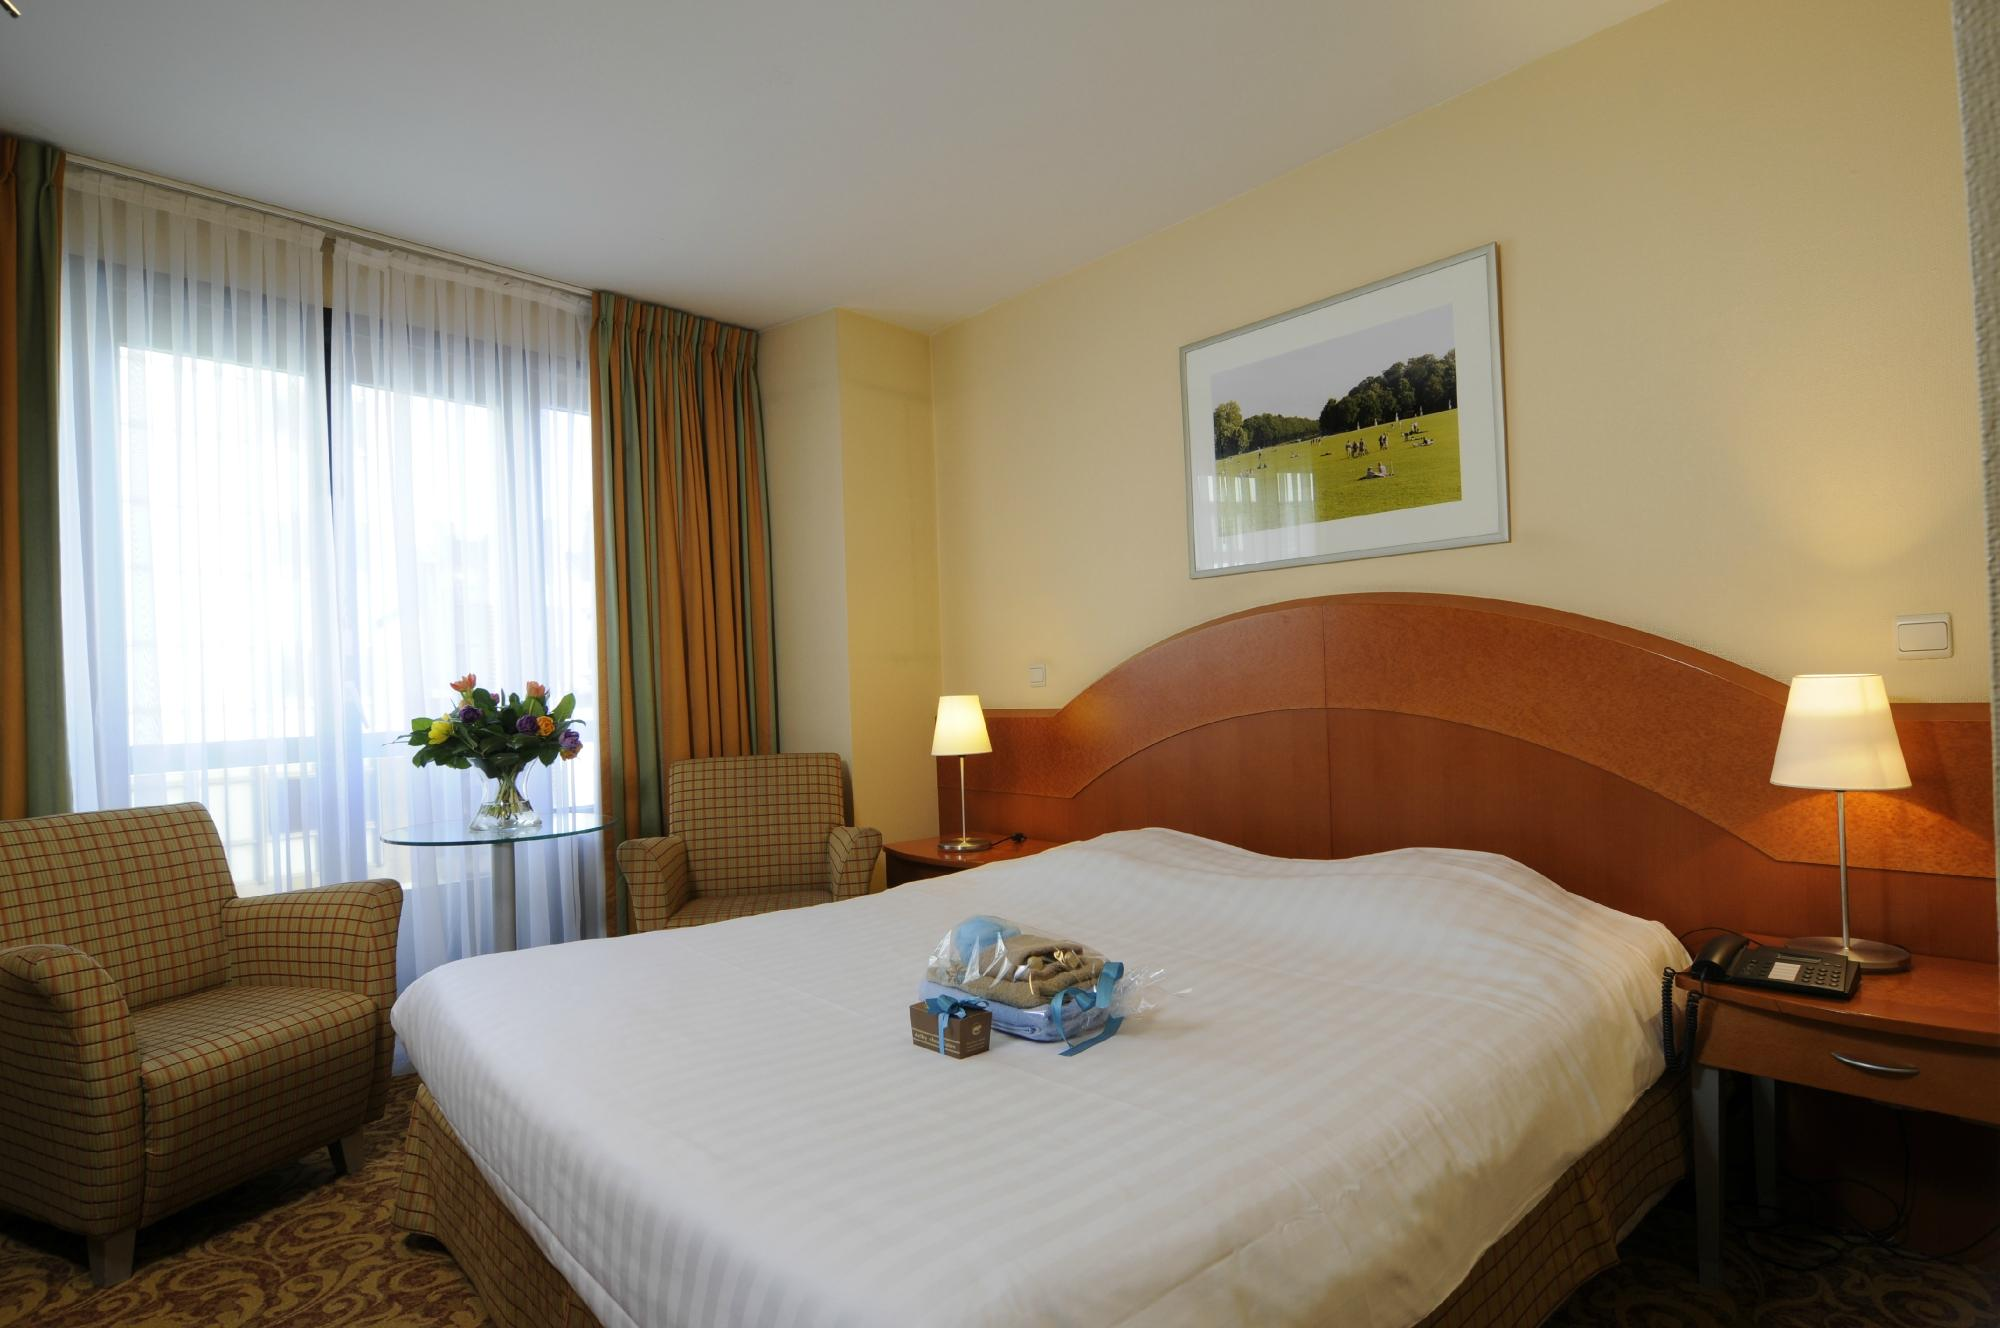 Hotel Acces